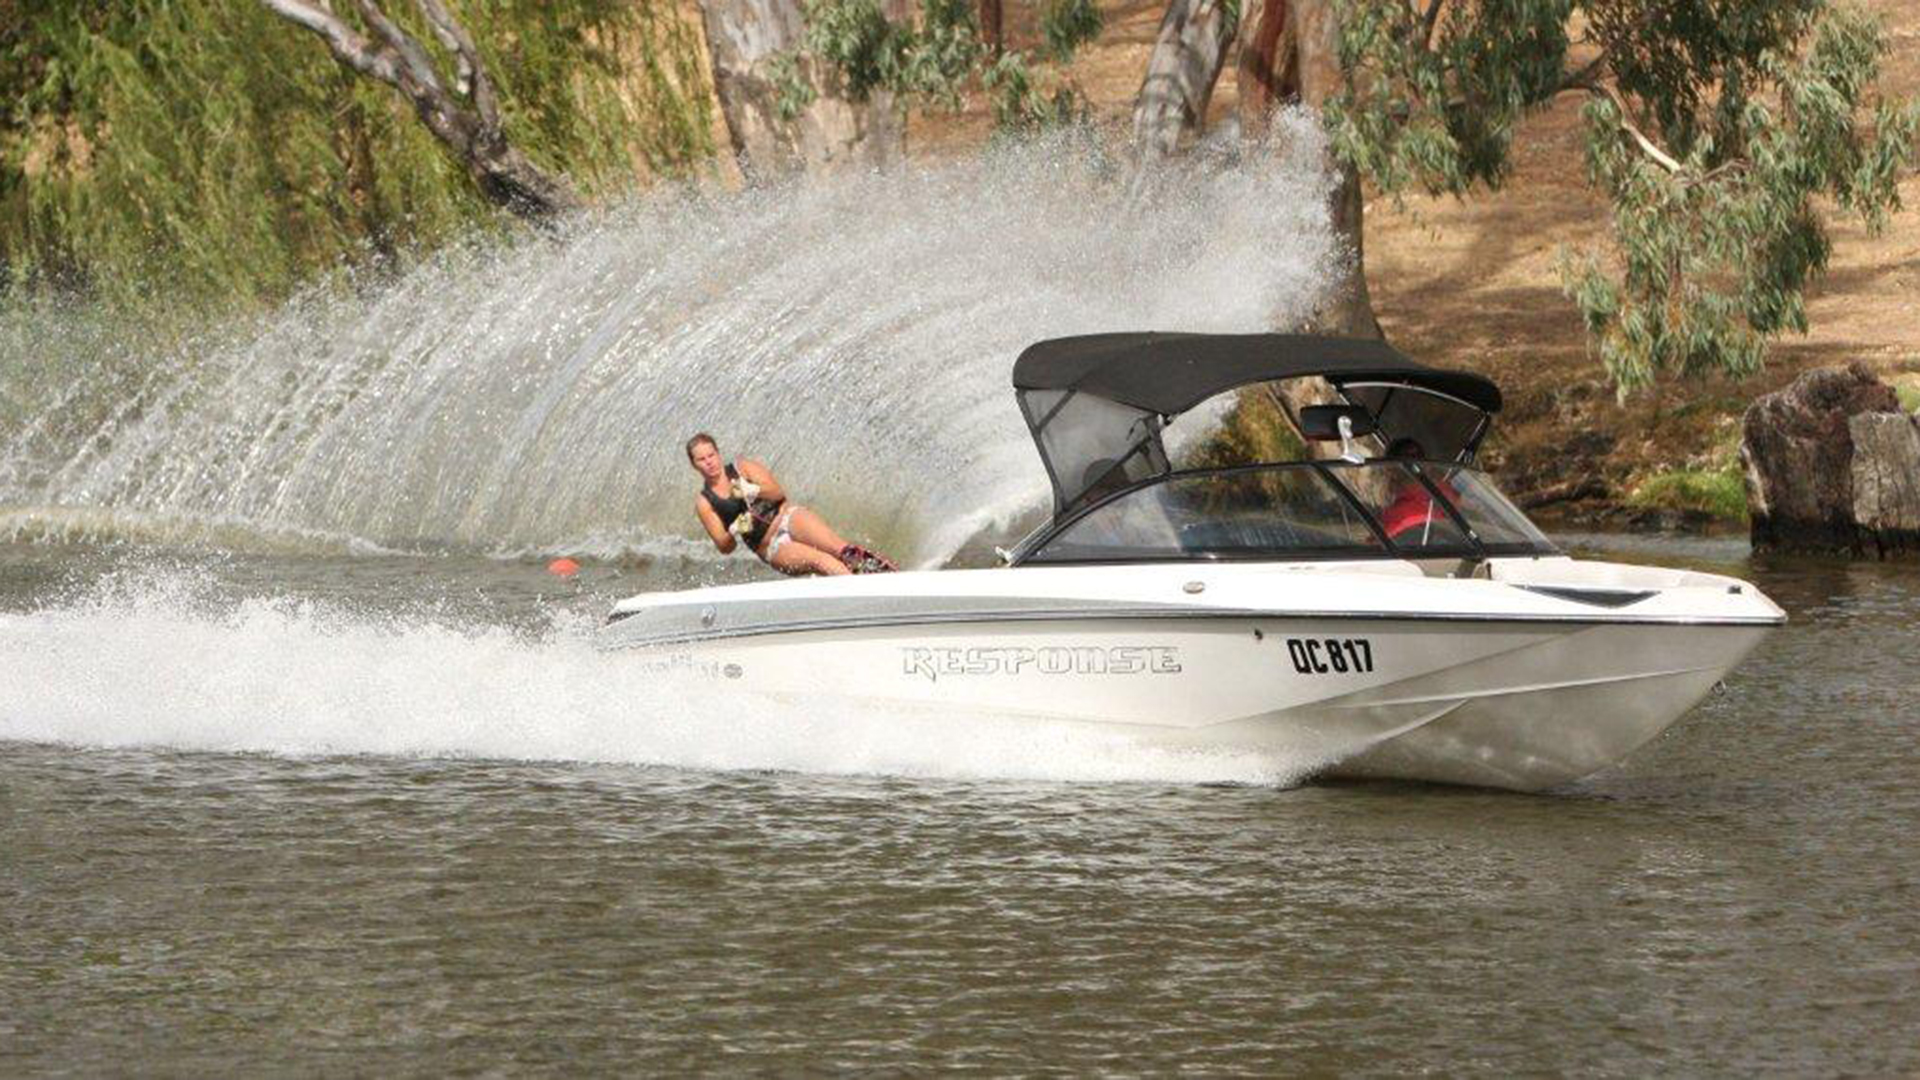 Water skiing on the Loddon River